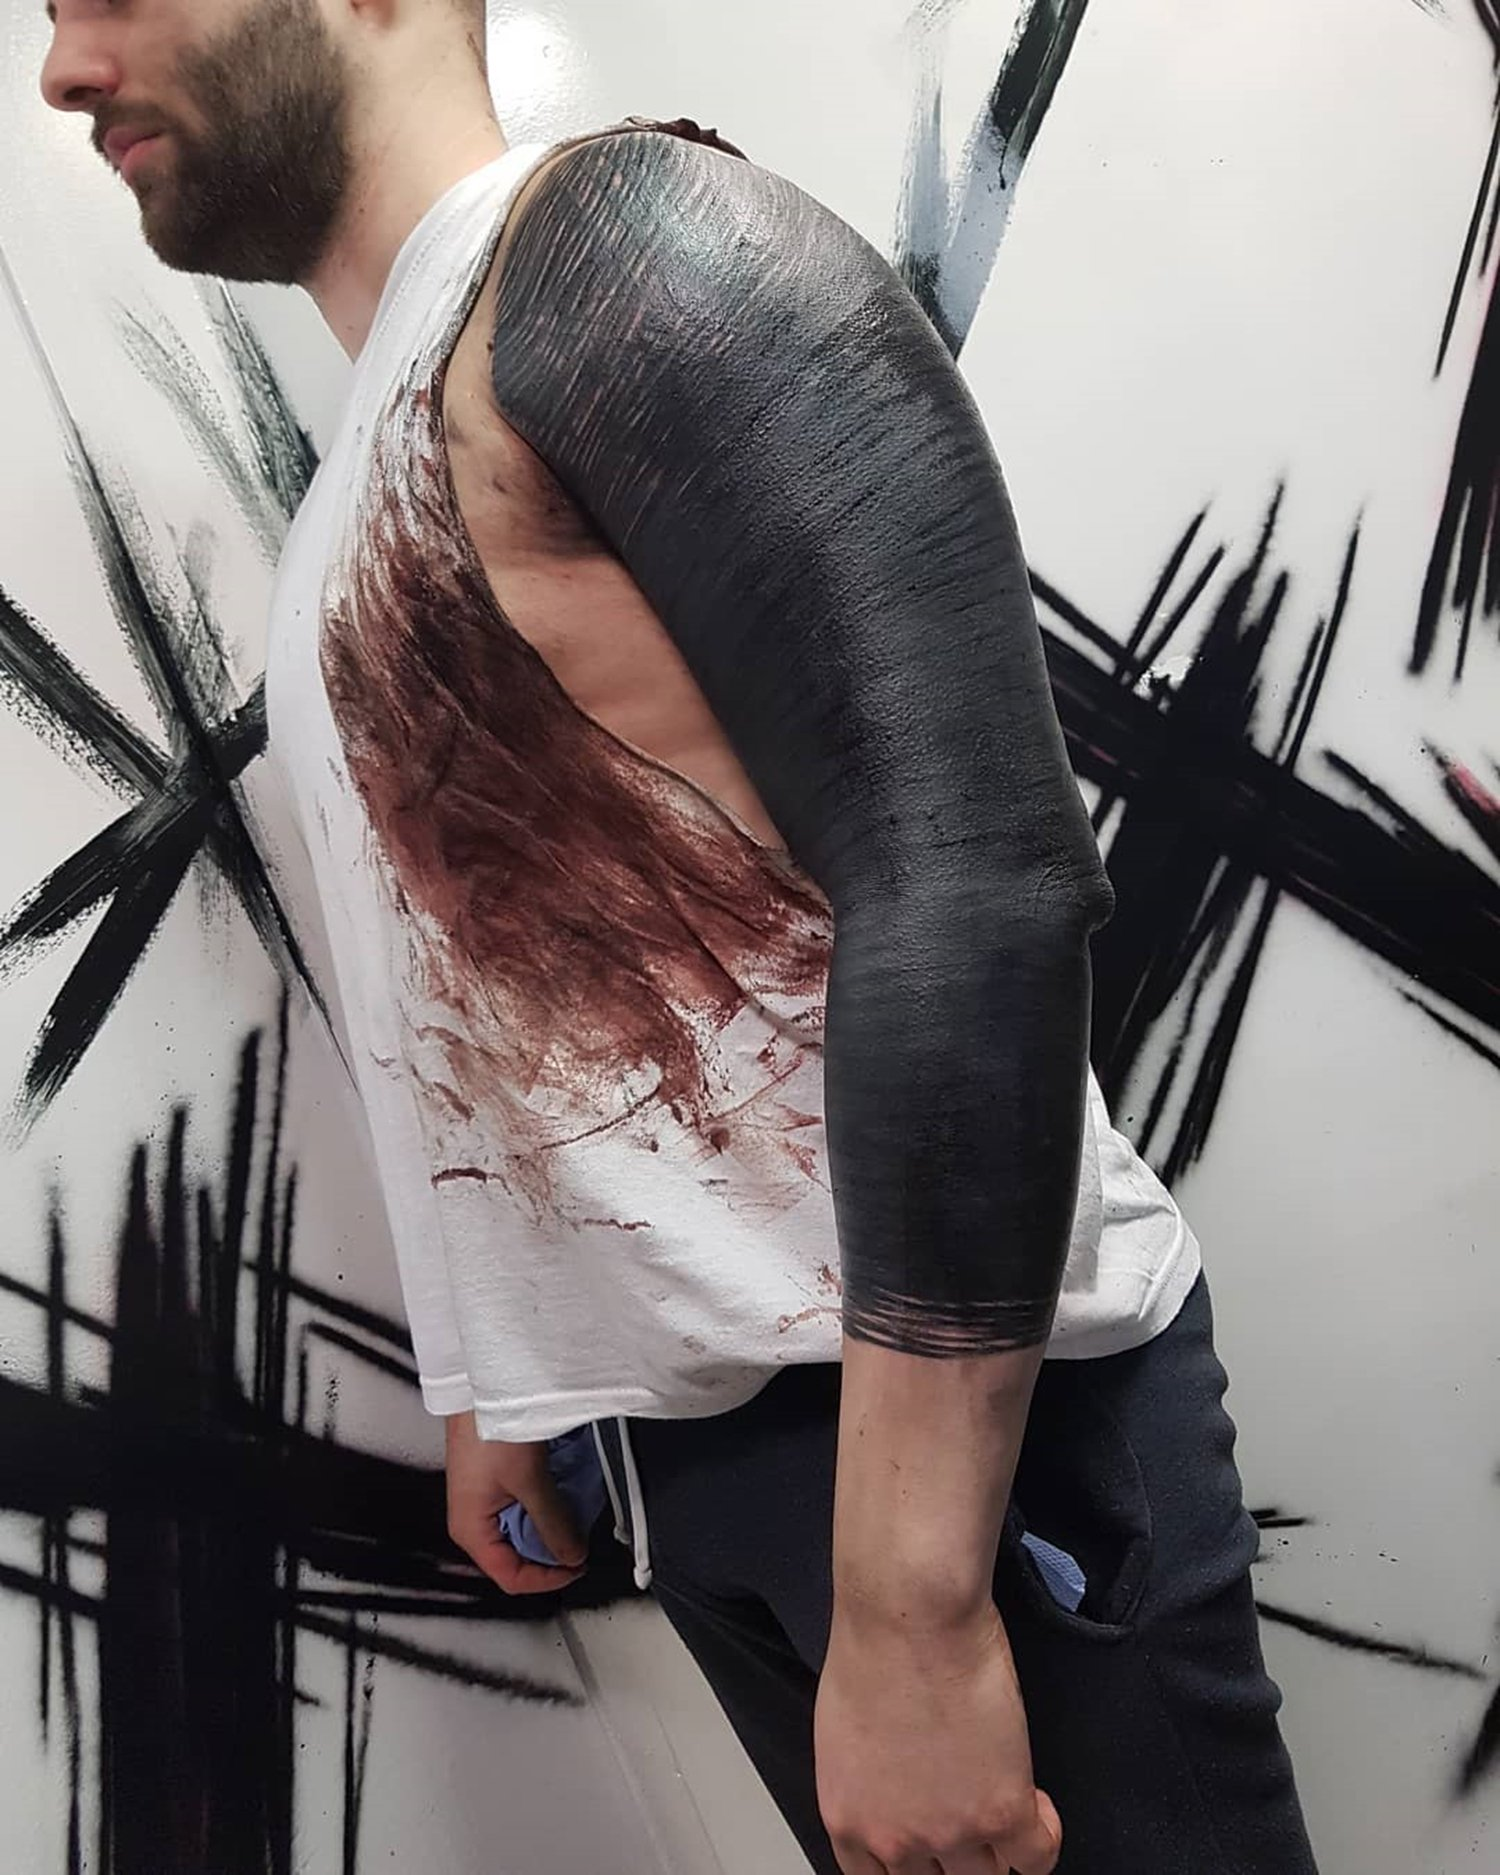 Master of Brutality: The Transformative Tattoos of Valerio